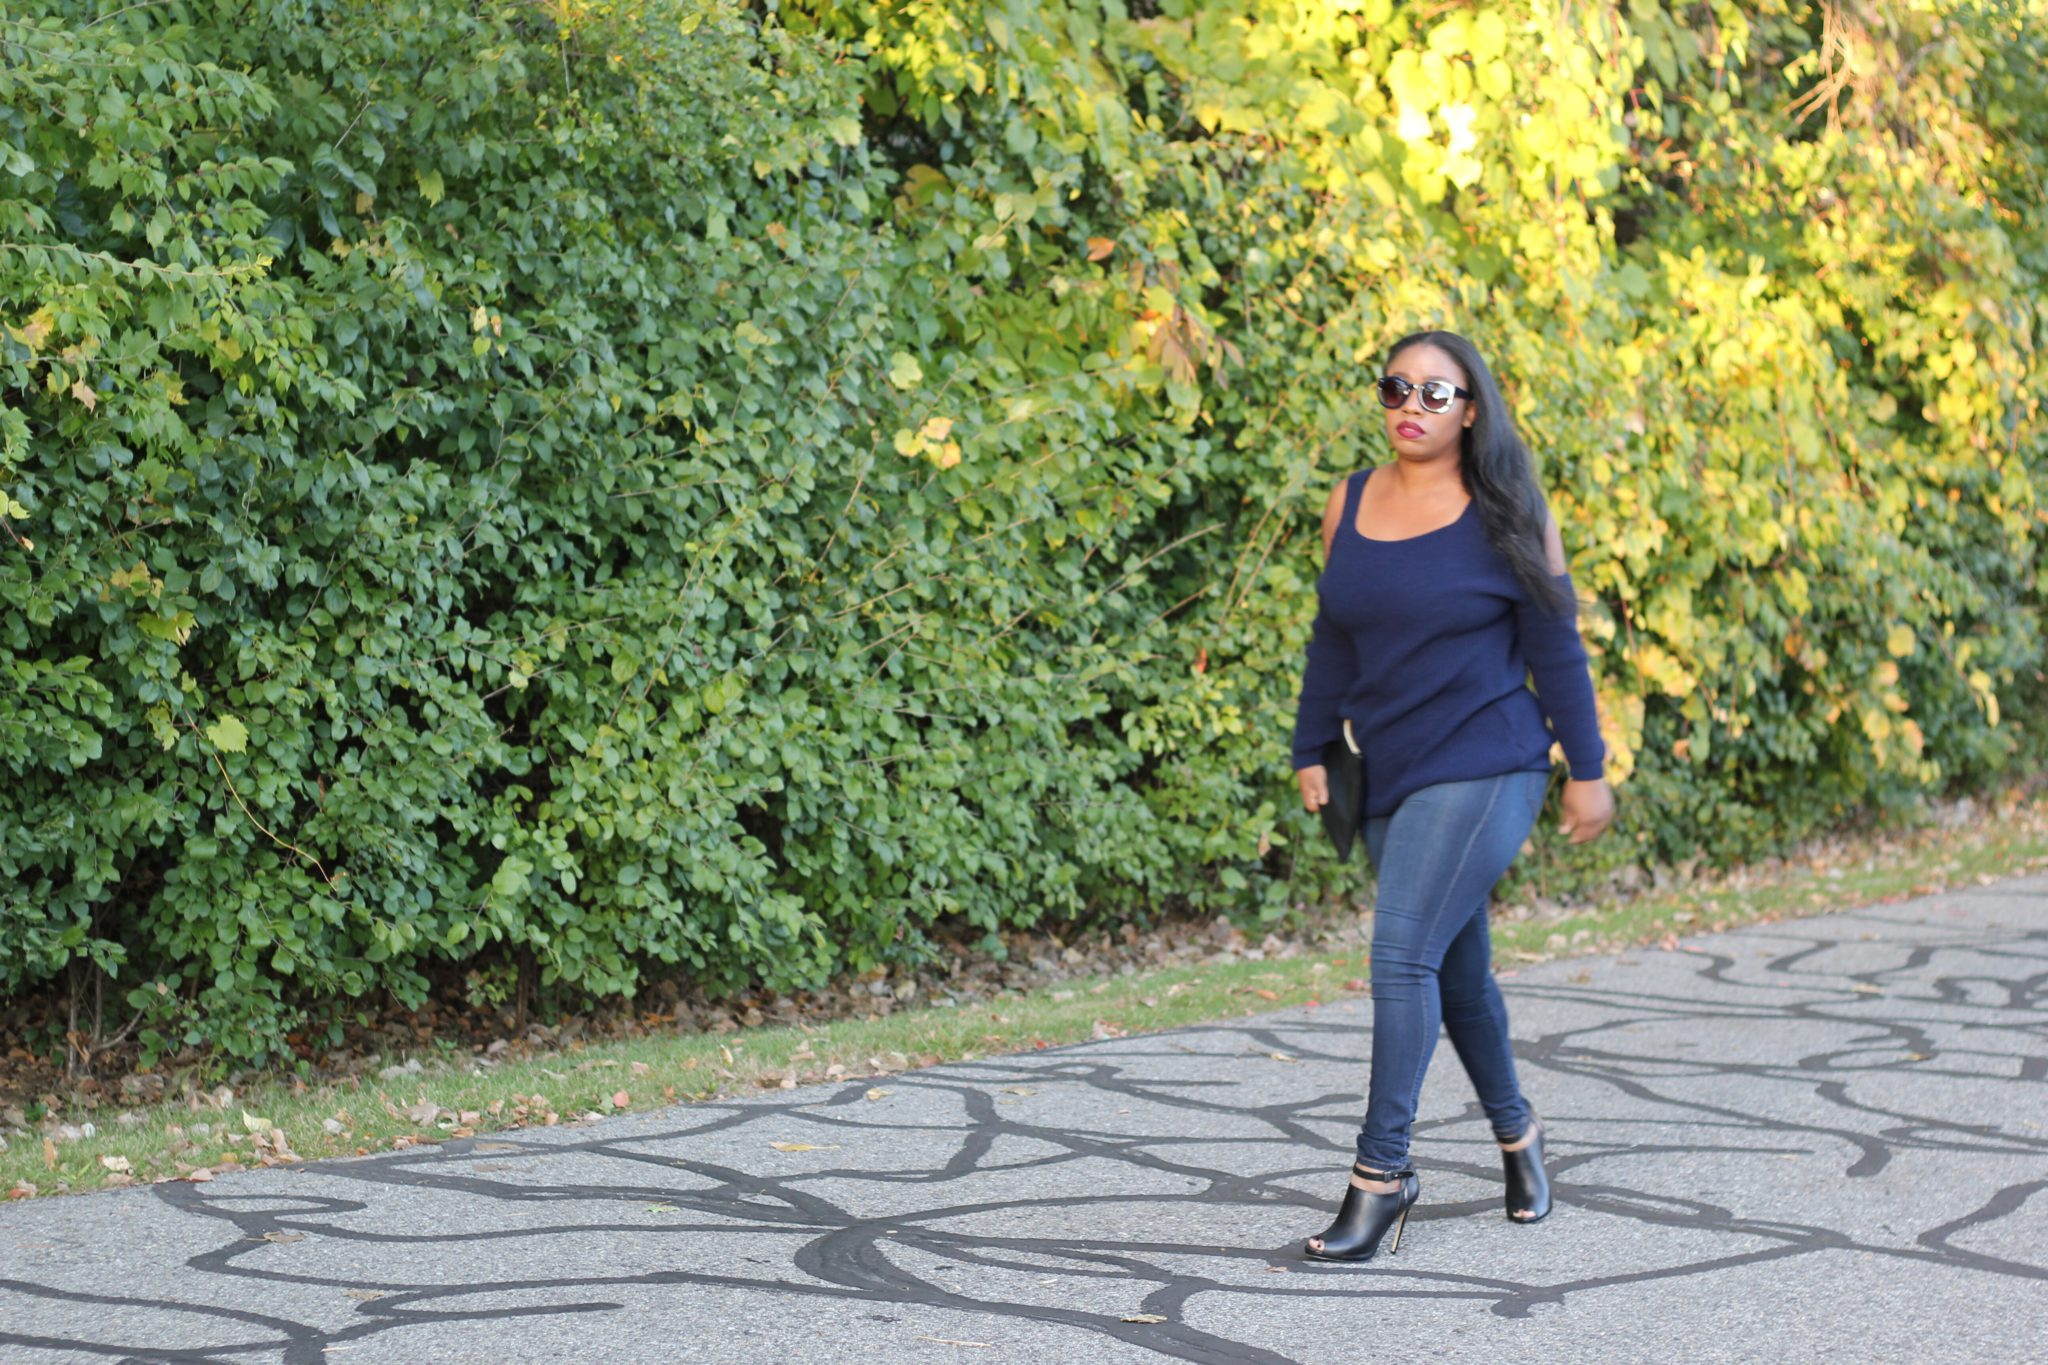 img_7565-1 Sweater Season 2016American Apparel Boohoo Fall 2016 Fashion Fashion Nova H&M OOTD